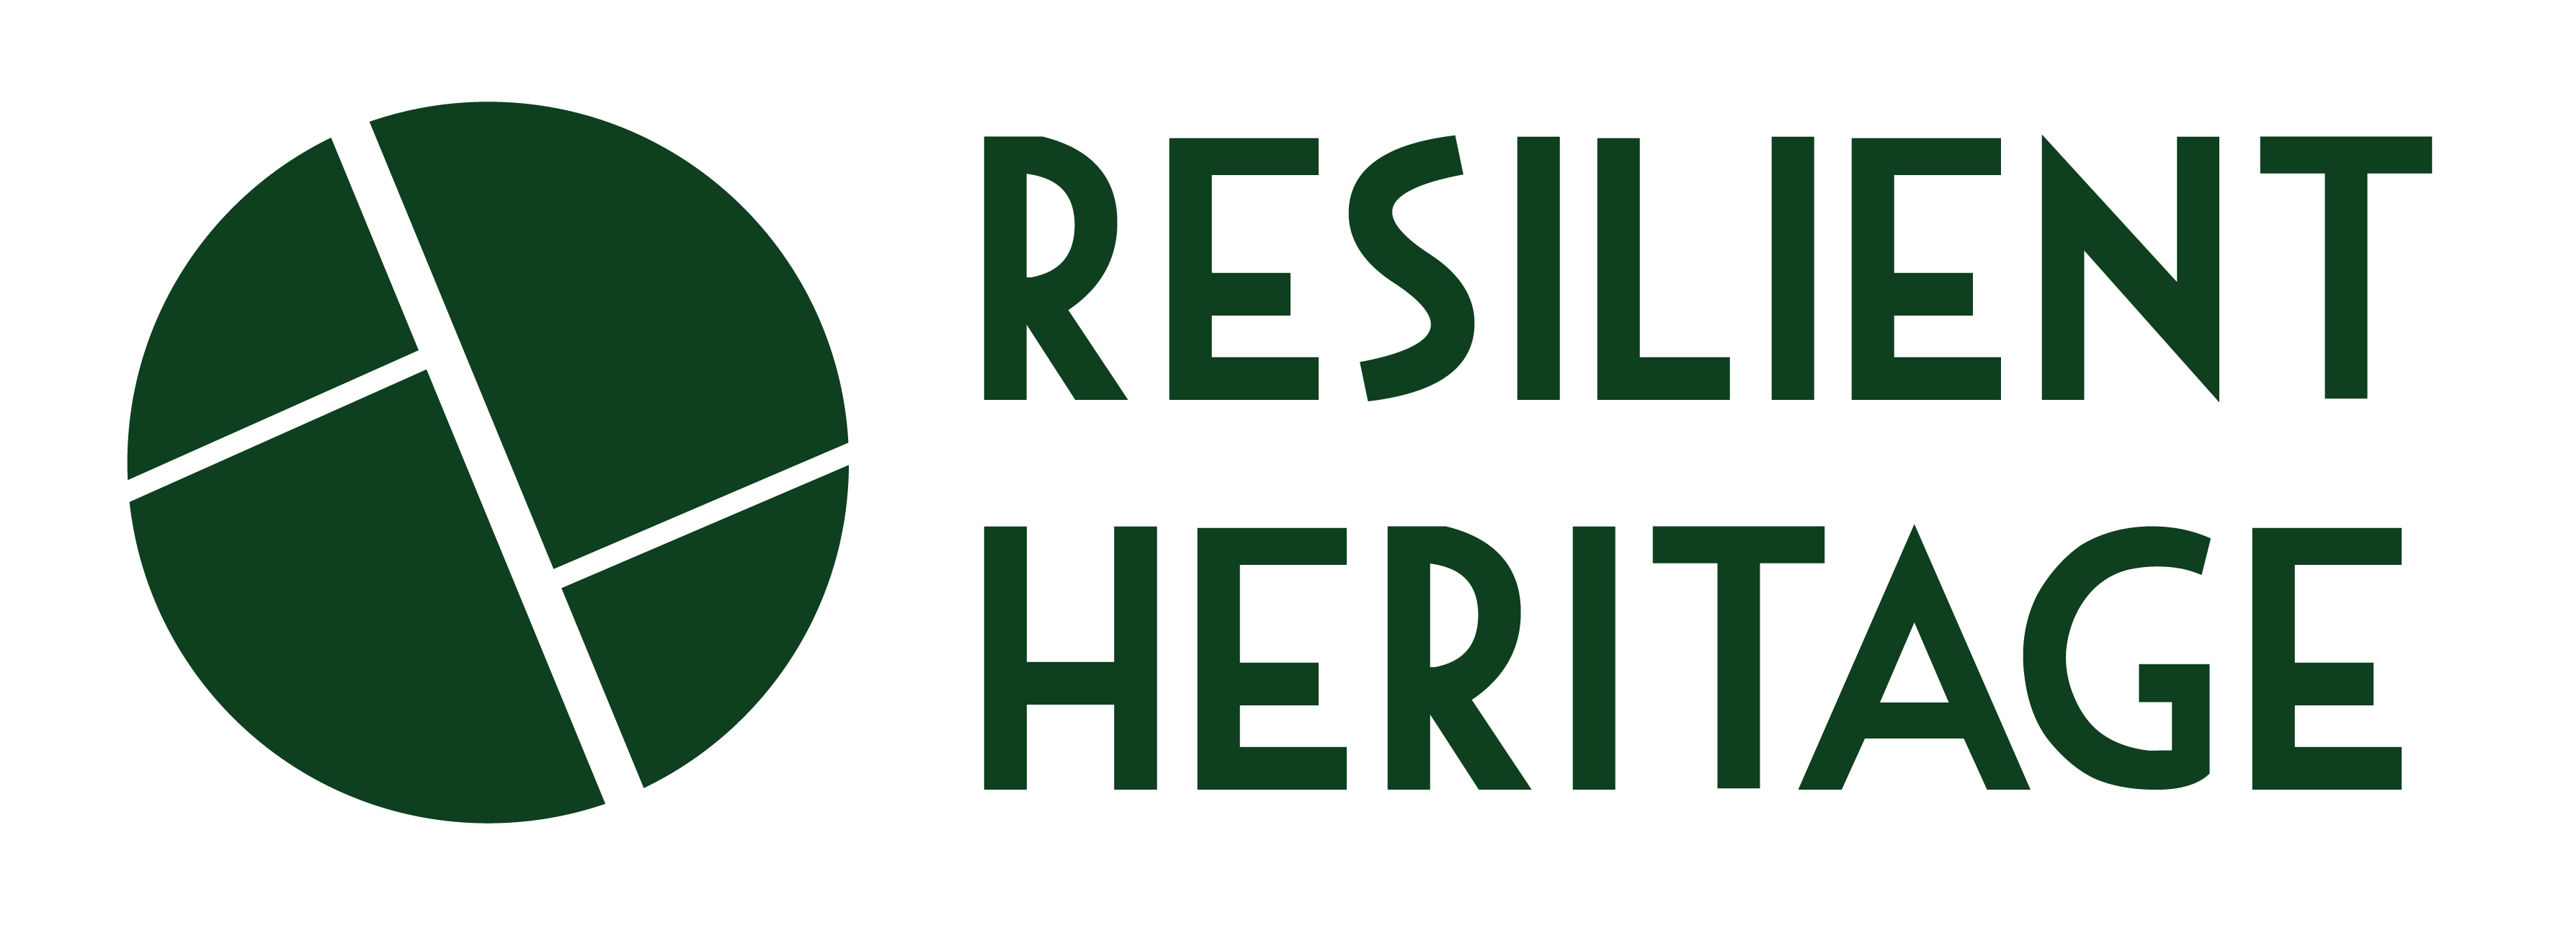 Resilient Heritage